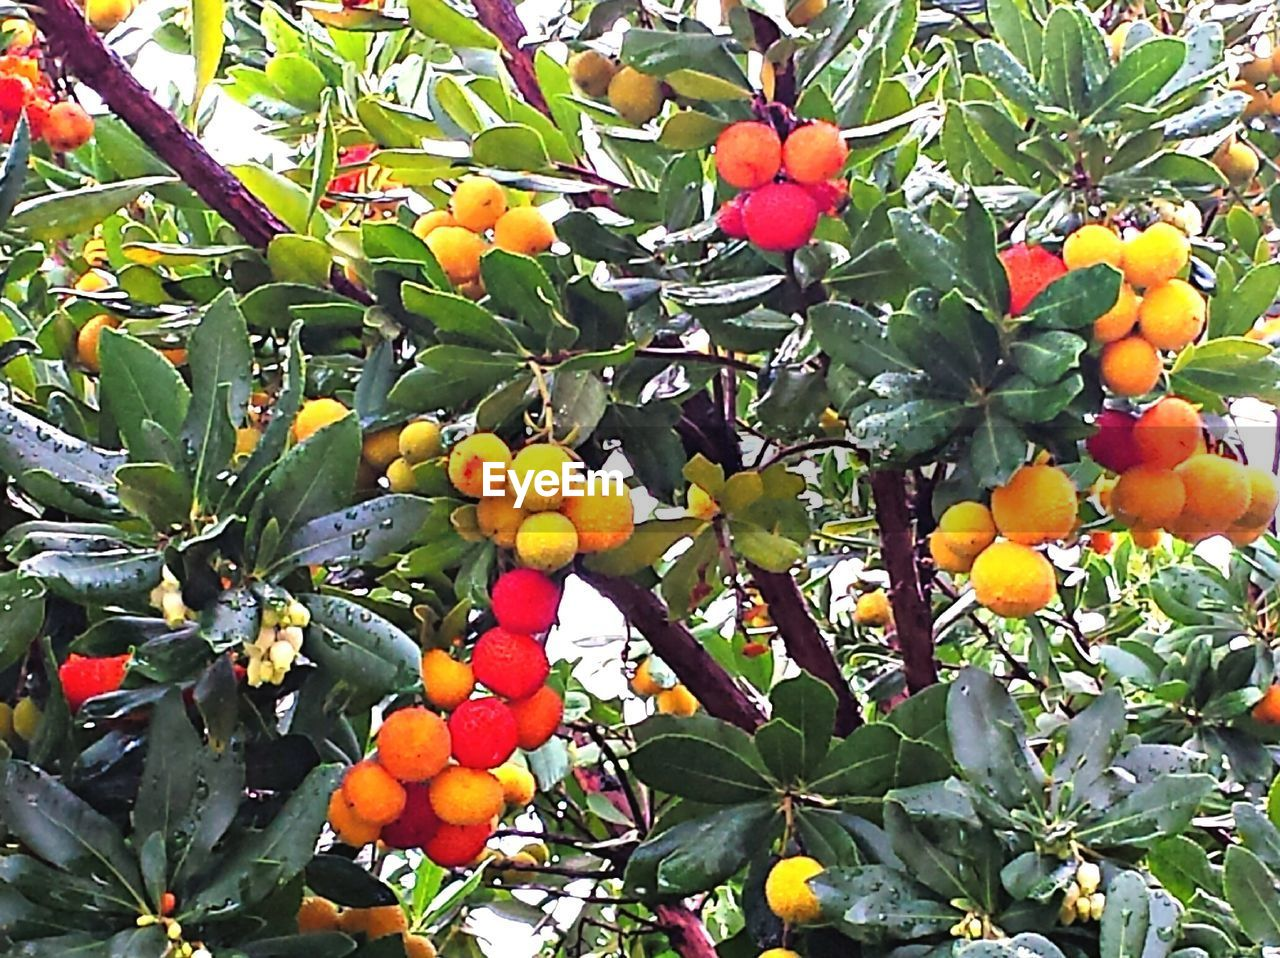 fruit, leaf, food and drink, growth, food, tree, day, outdoors, freshness, low angle view, citrus fruit, no people, healthy eating, green color, nature, orange tree, hanging, agriculture, branch, beauty in nature, close-up